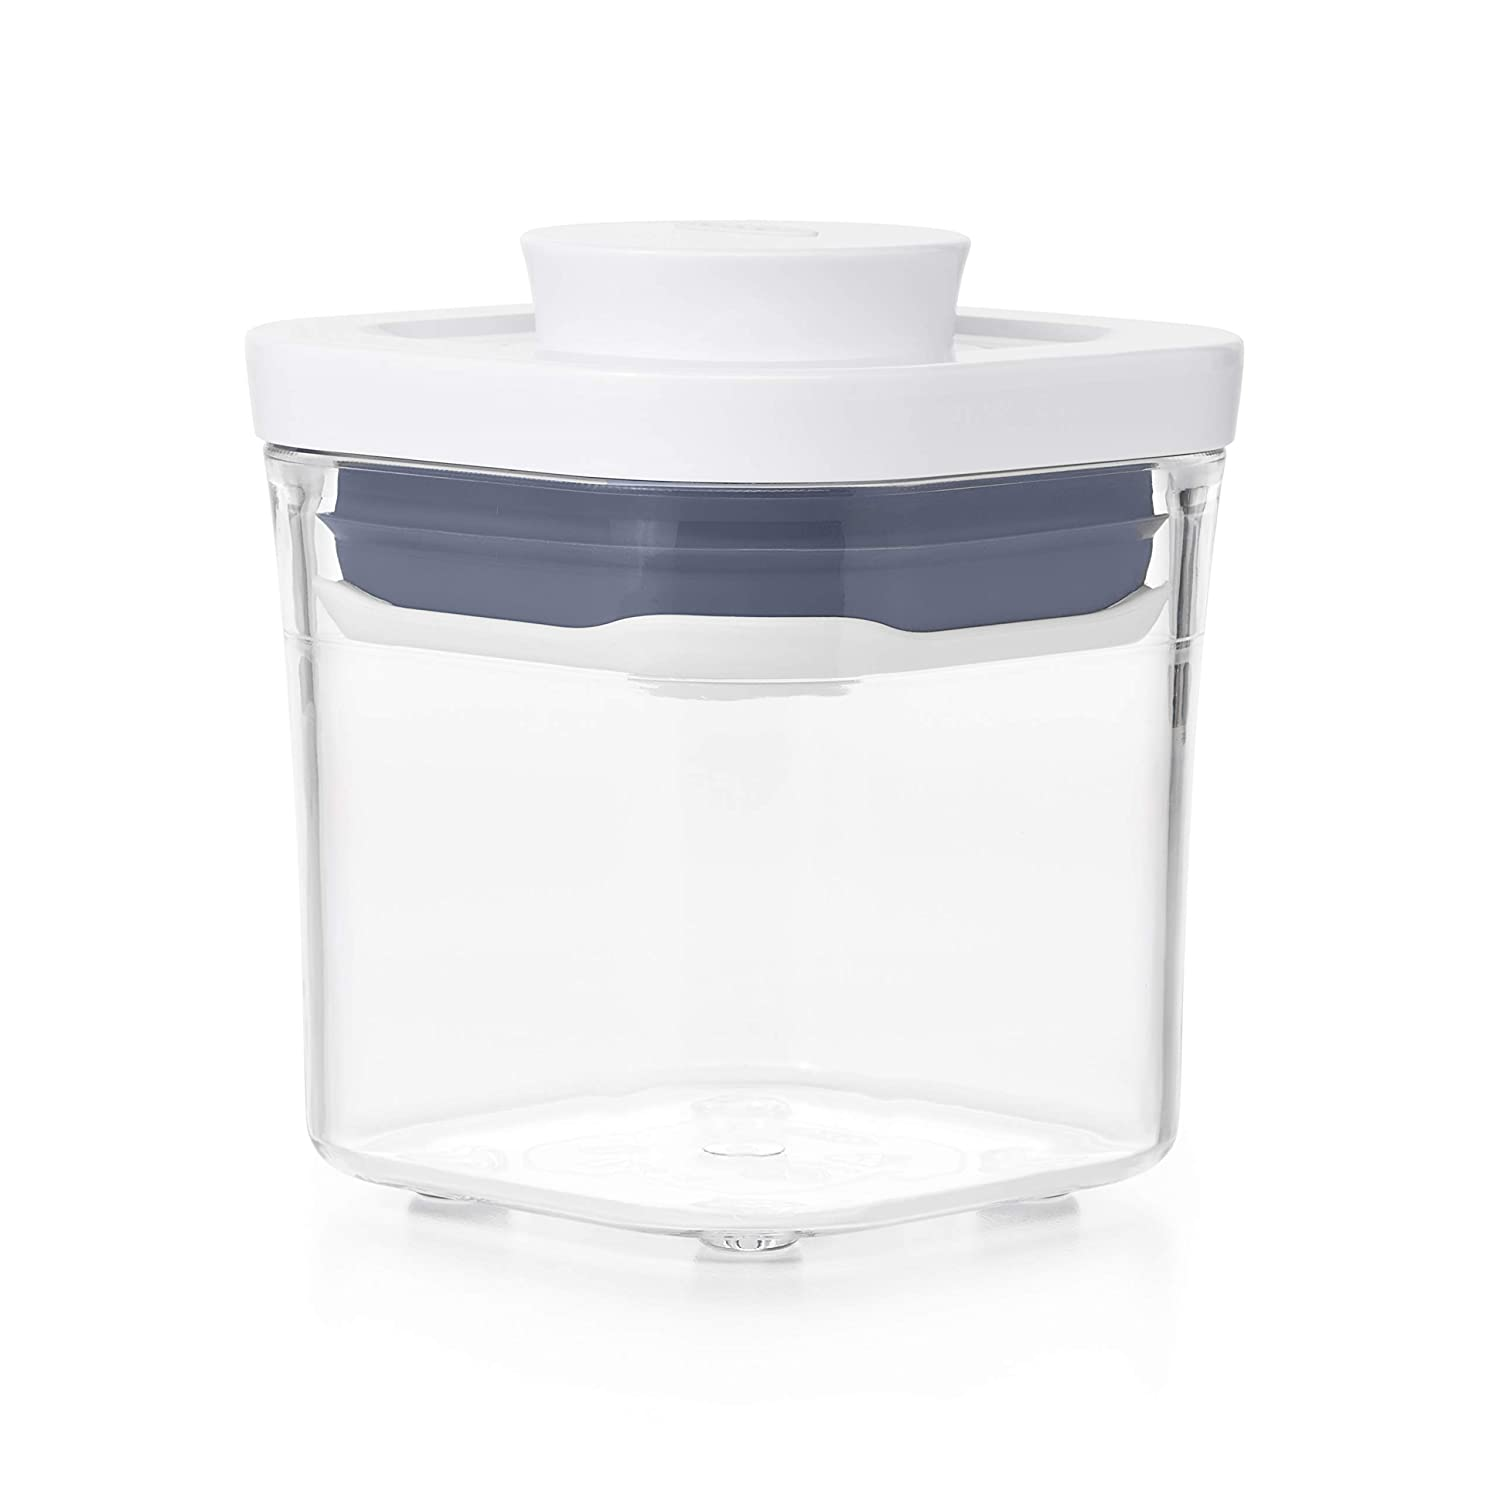 NEW OXO Good Grips POP Container - Airtight Food Storage - 0.2 Qt for Spices and More